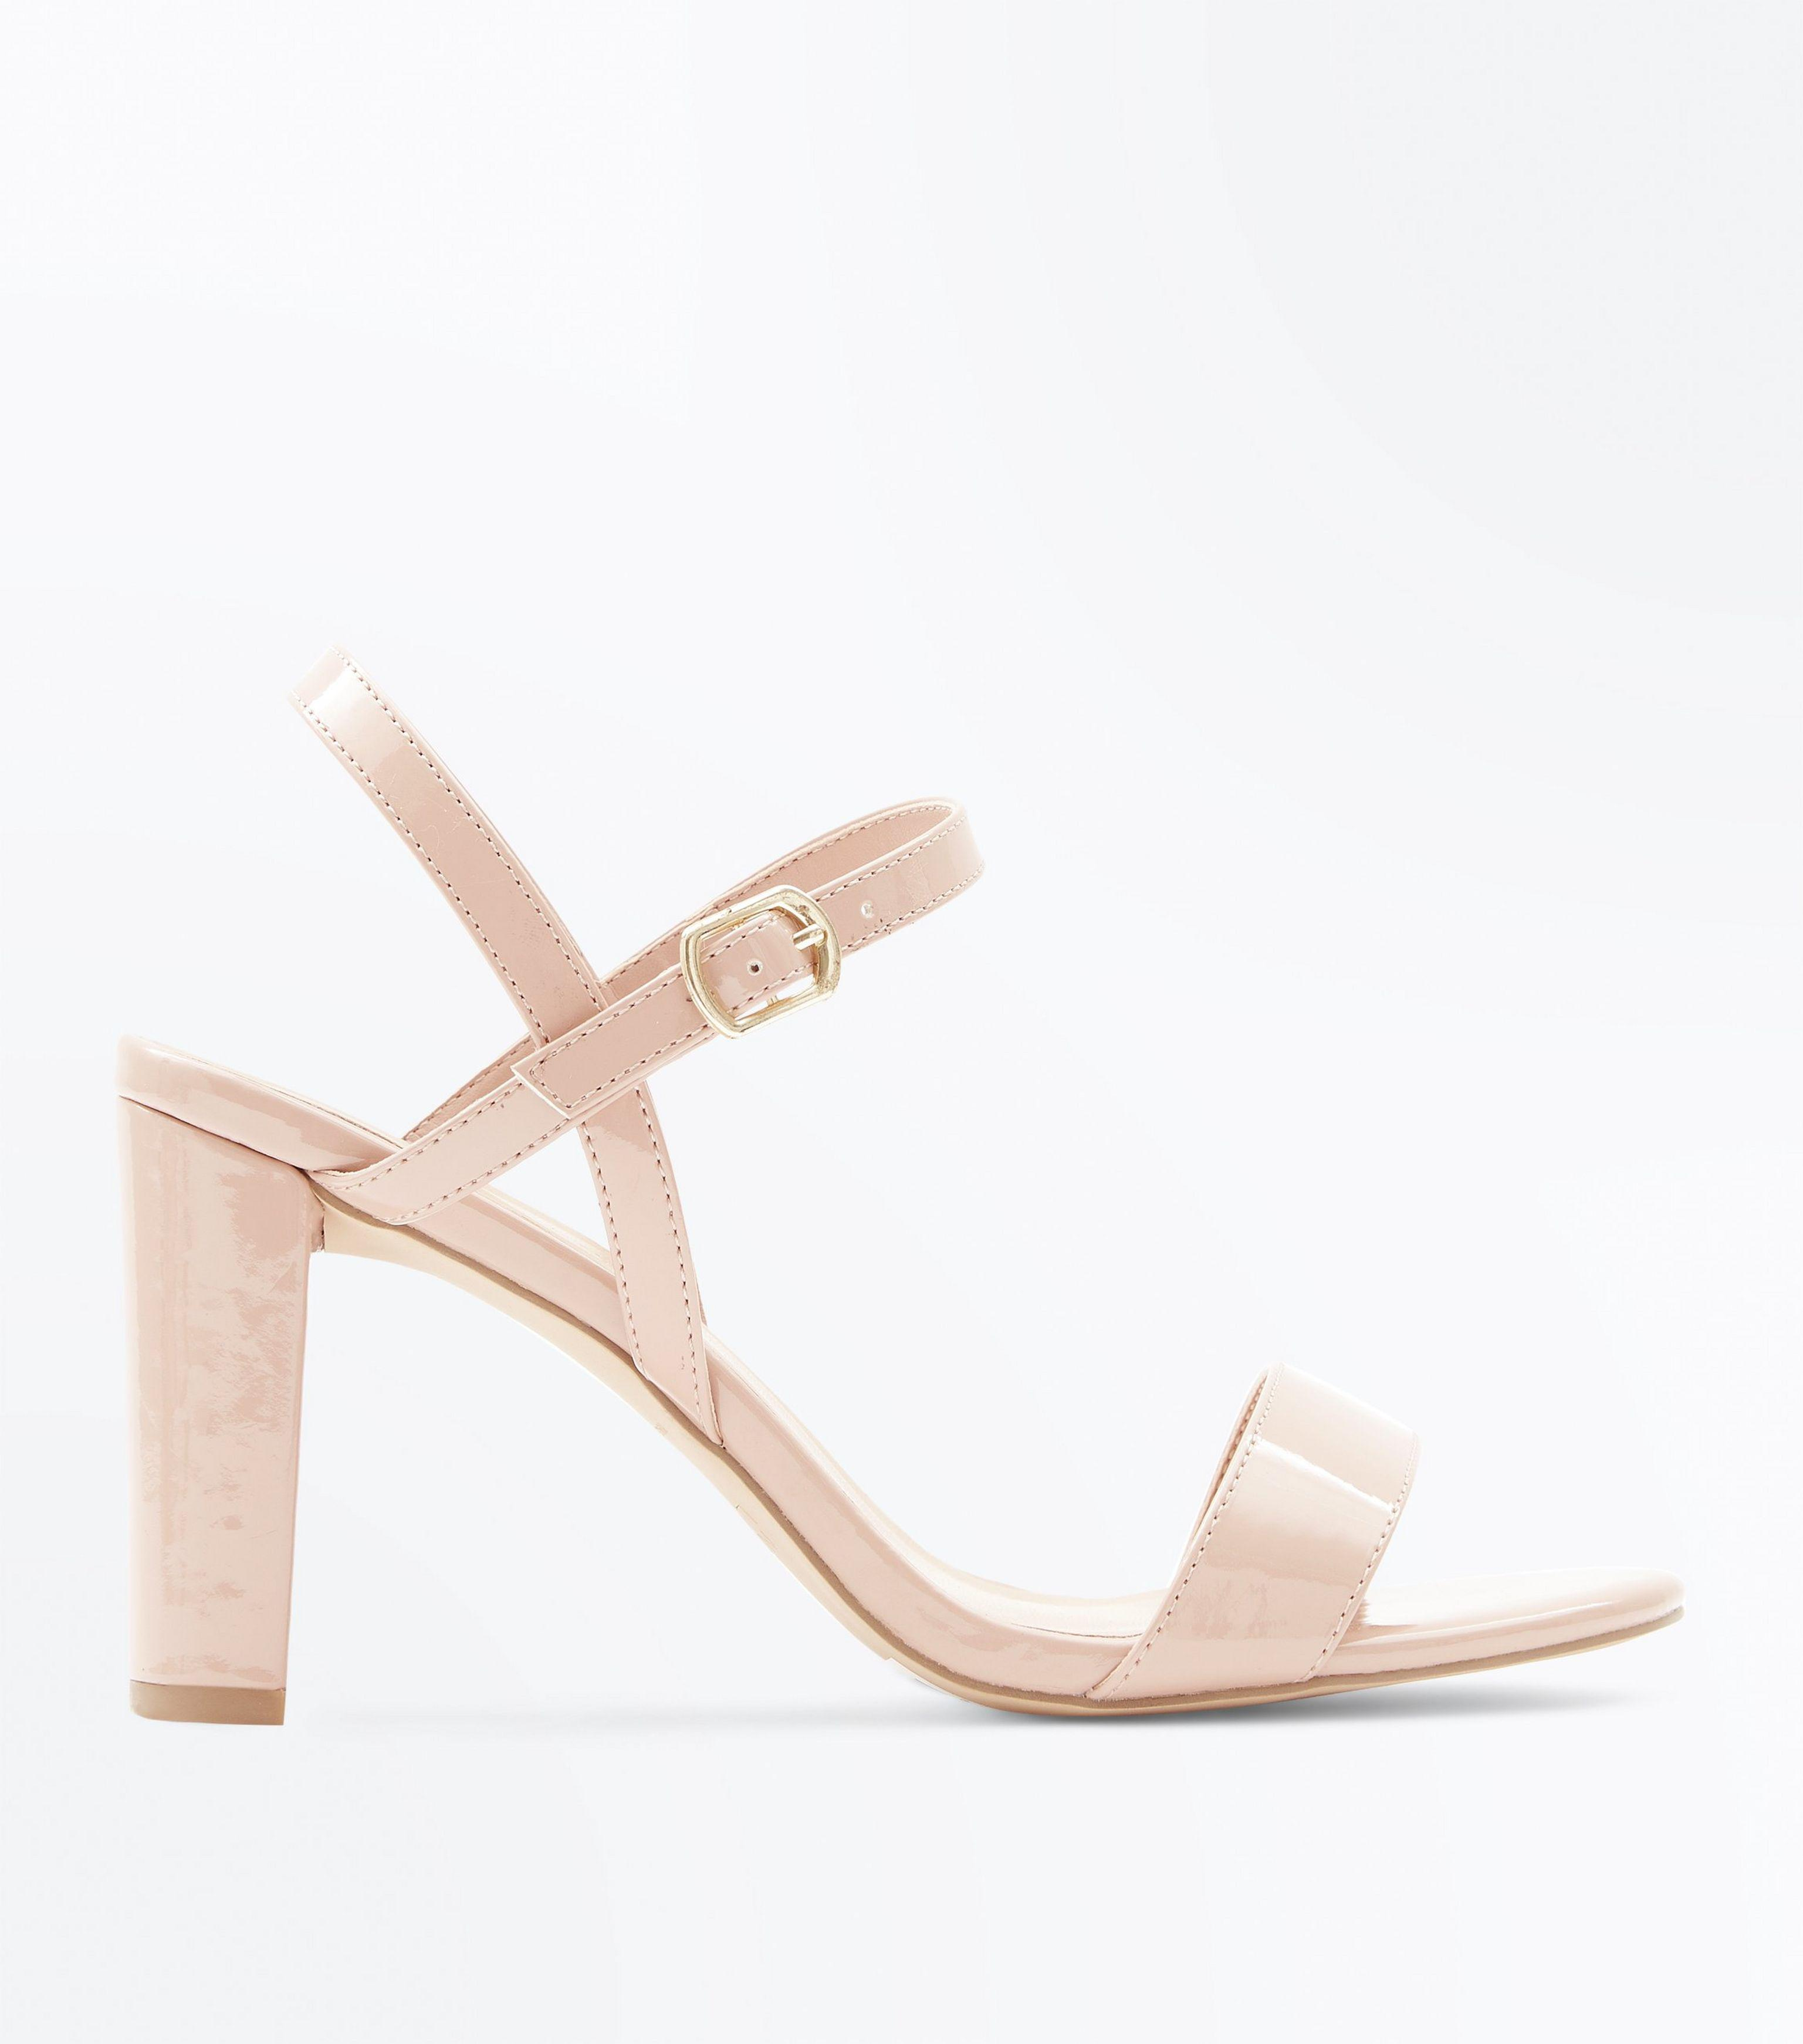 43ae78cd44a New Look Natural Wide Fit Nude Patent Block Heel Sandals